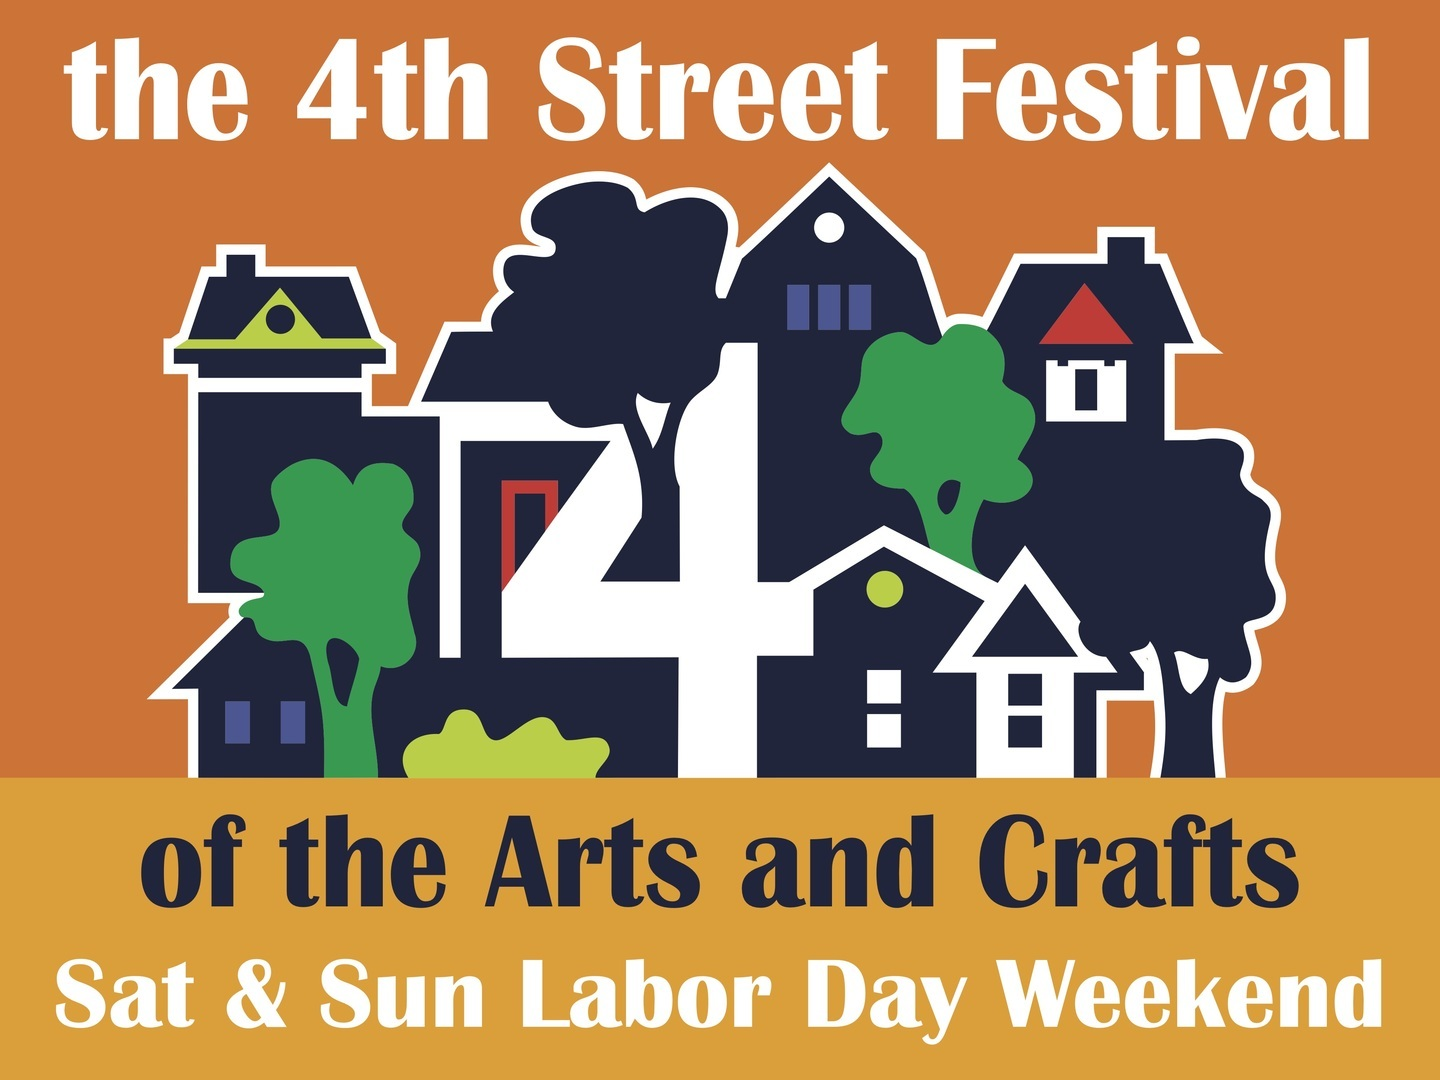 Fourth Street Festival of the Arts and Crafts